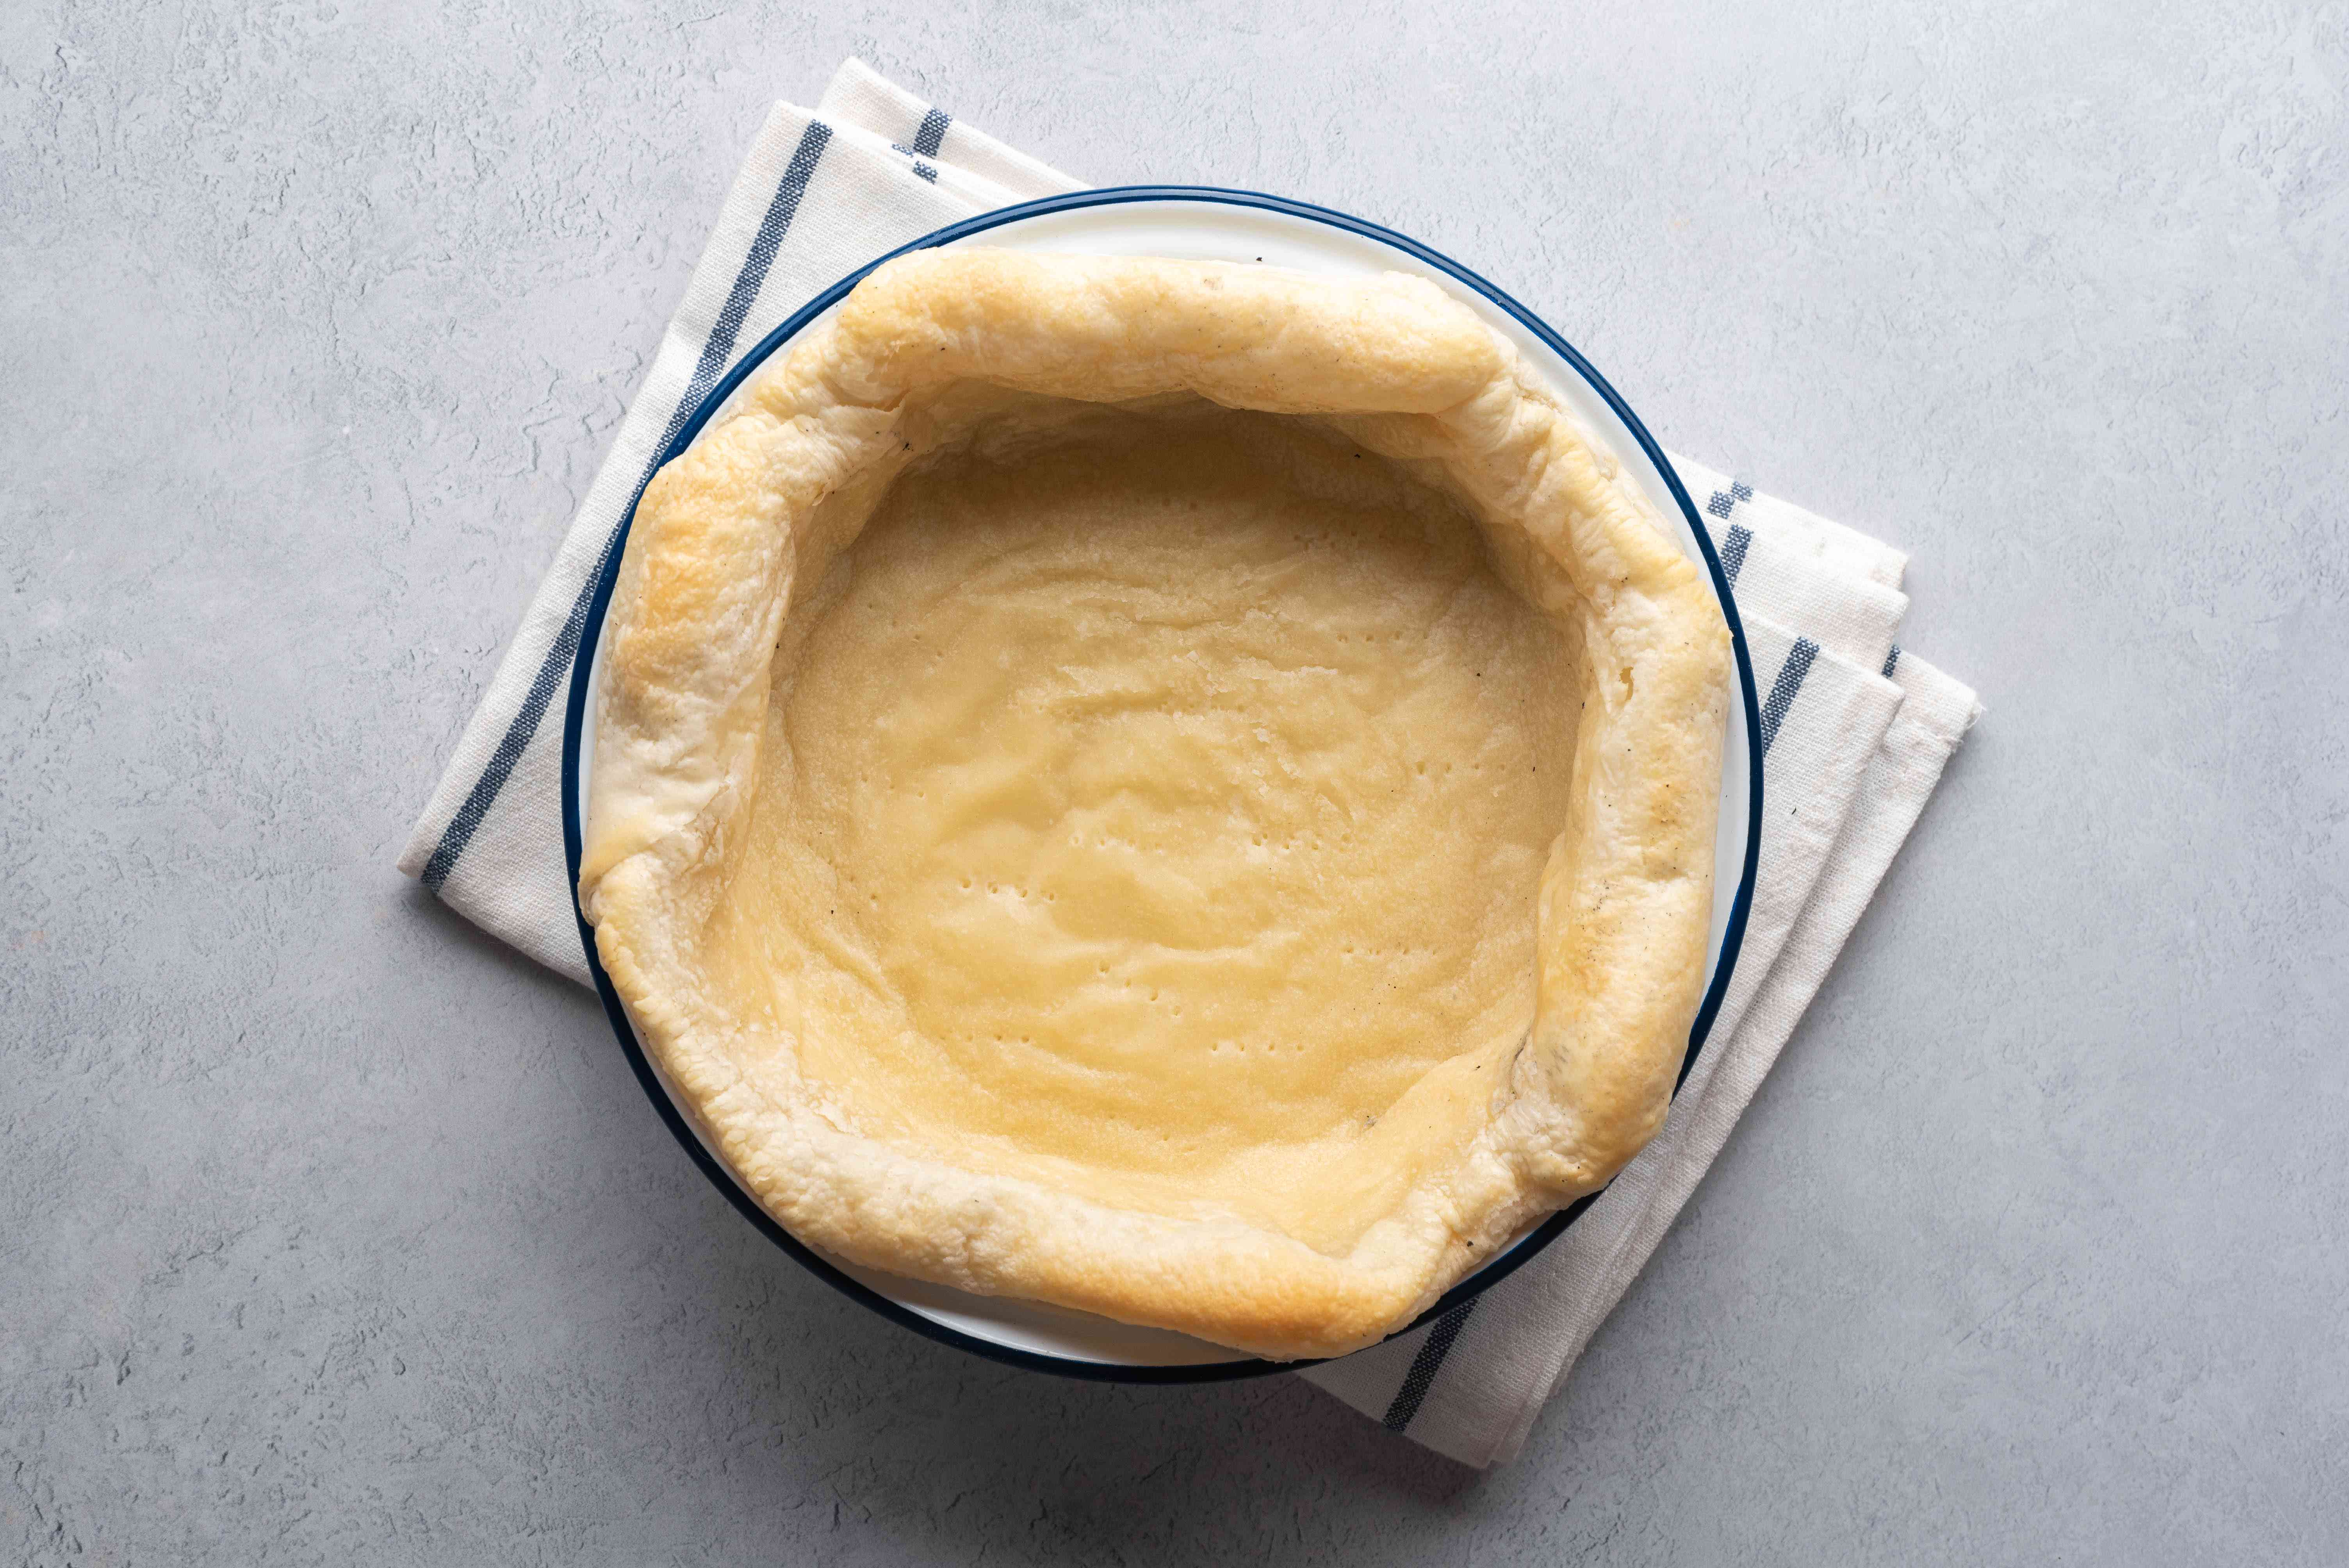 Remove the baking weights, and cook the dough further